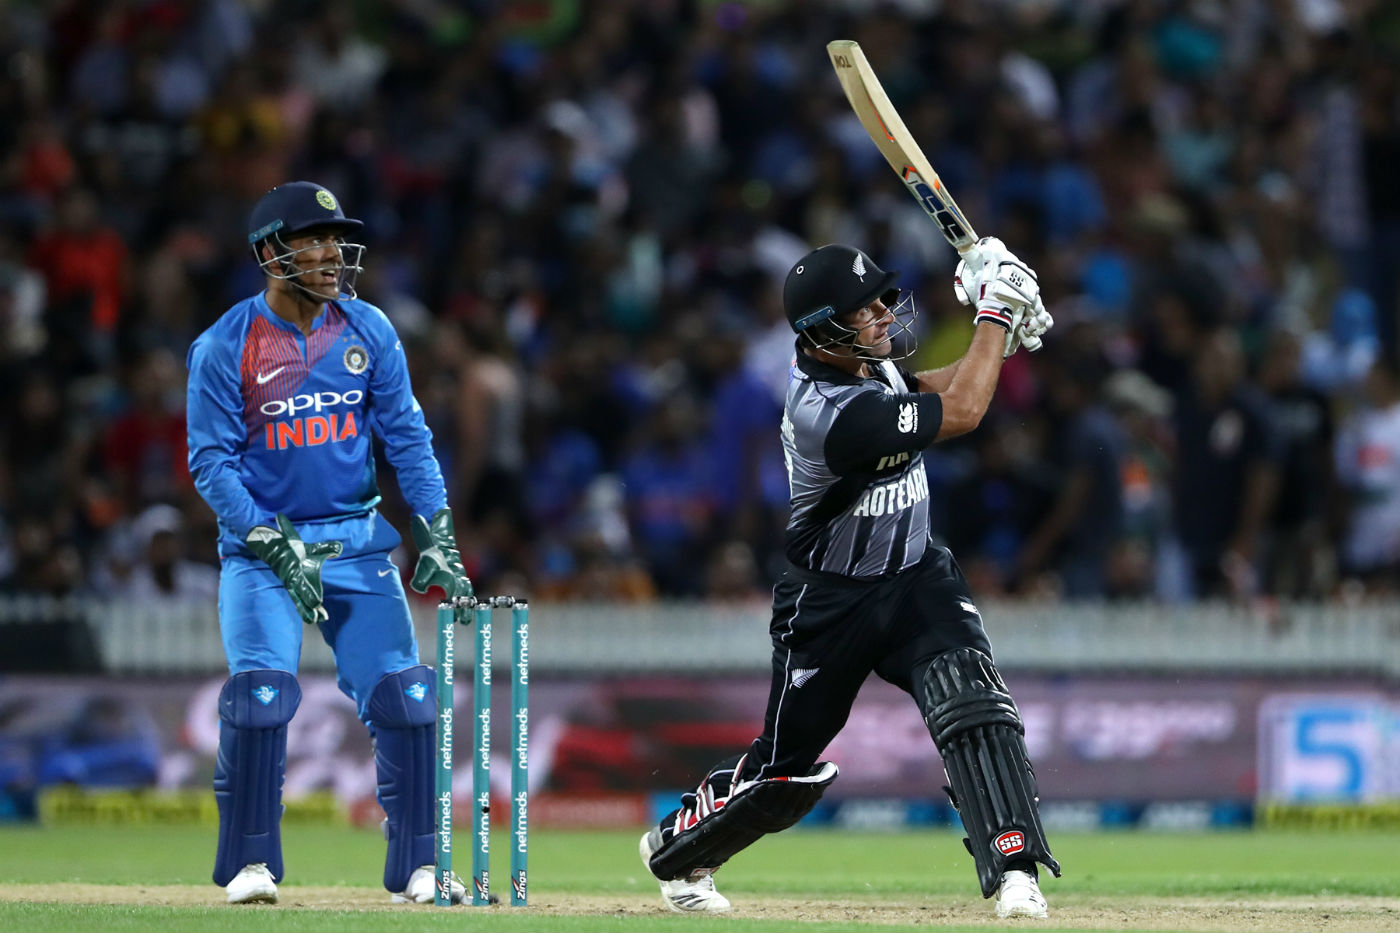 New Zealand vs India 3rd T20 Highlights